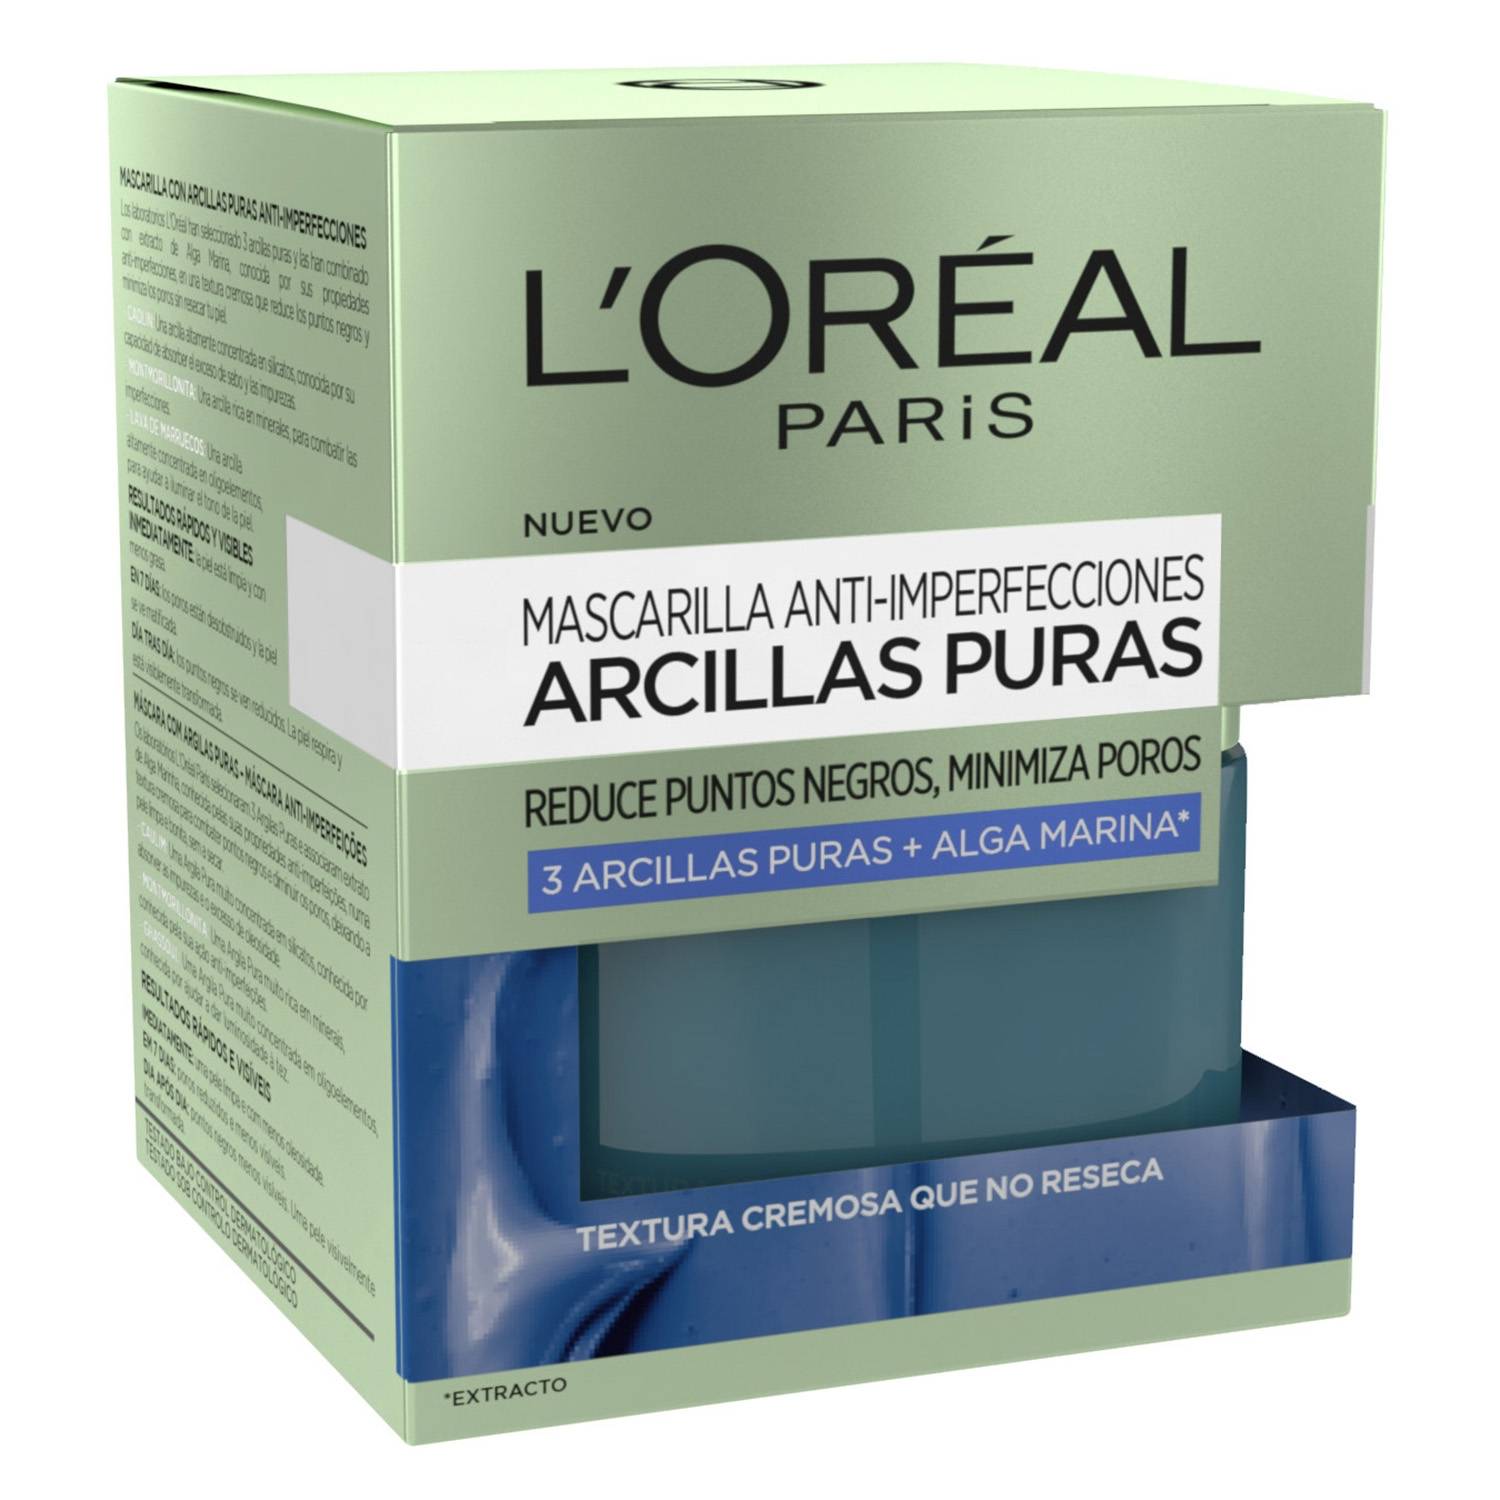 Mascarilla anti-imperfecciones Arcillas puras L'Oréal 50 ml.